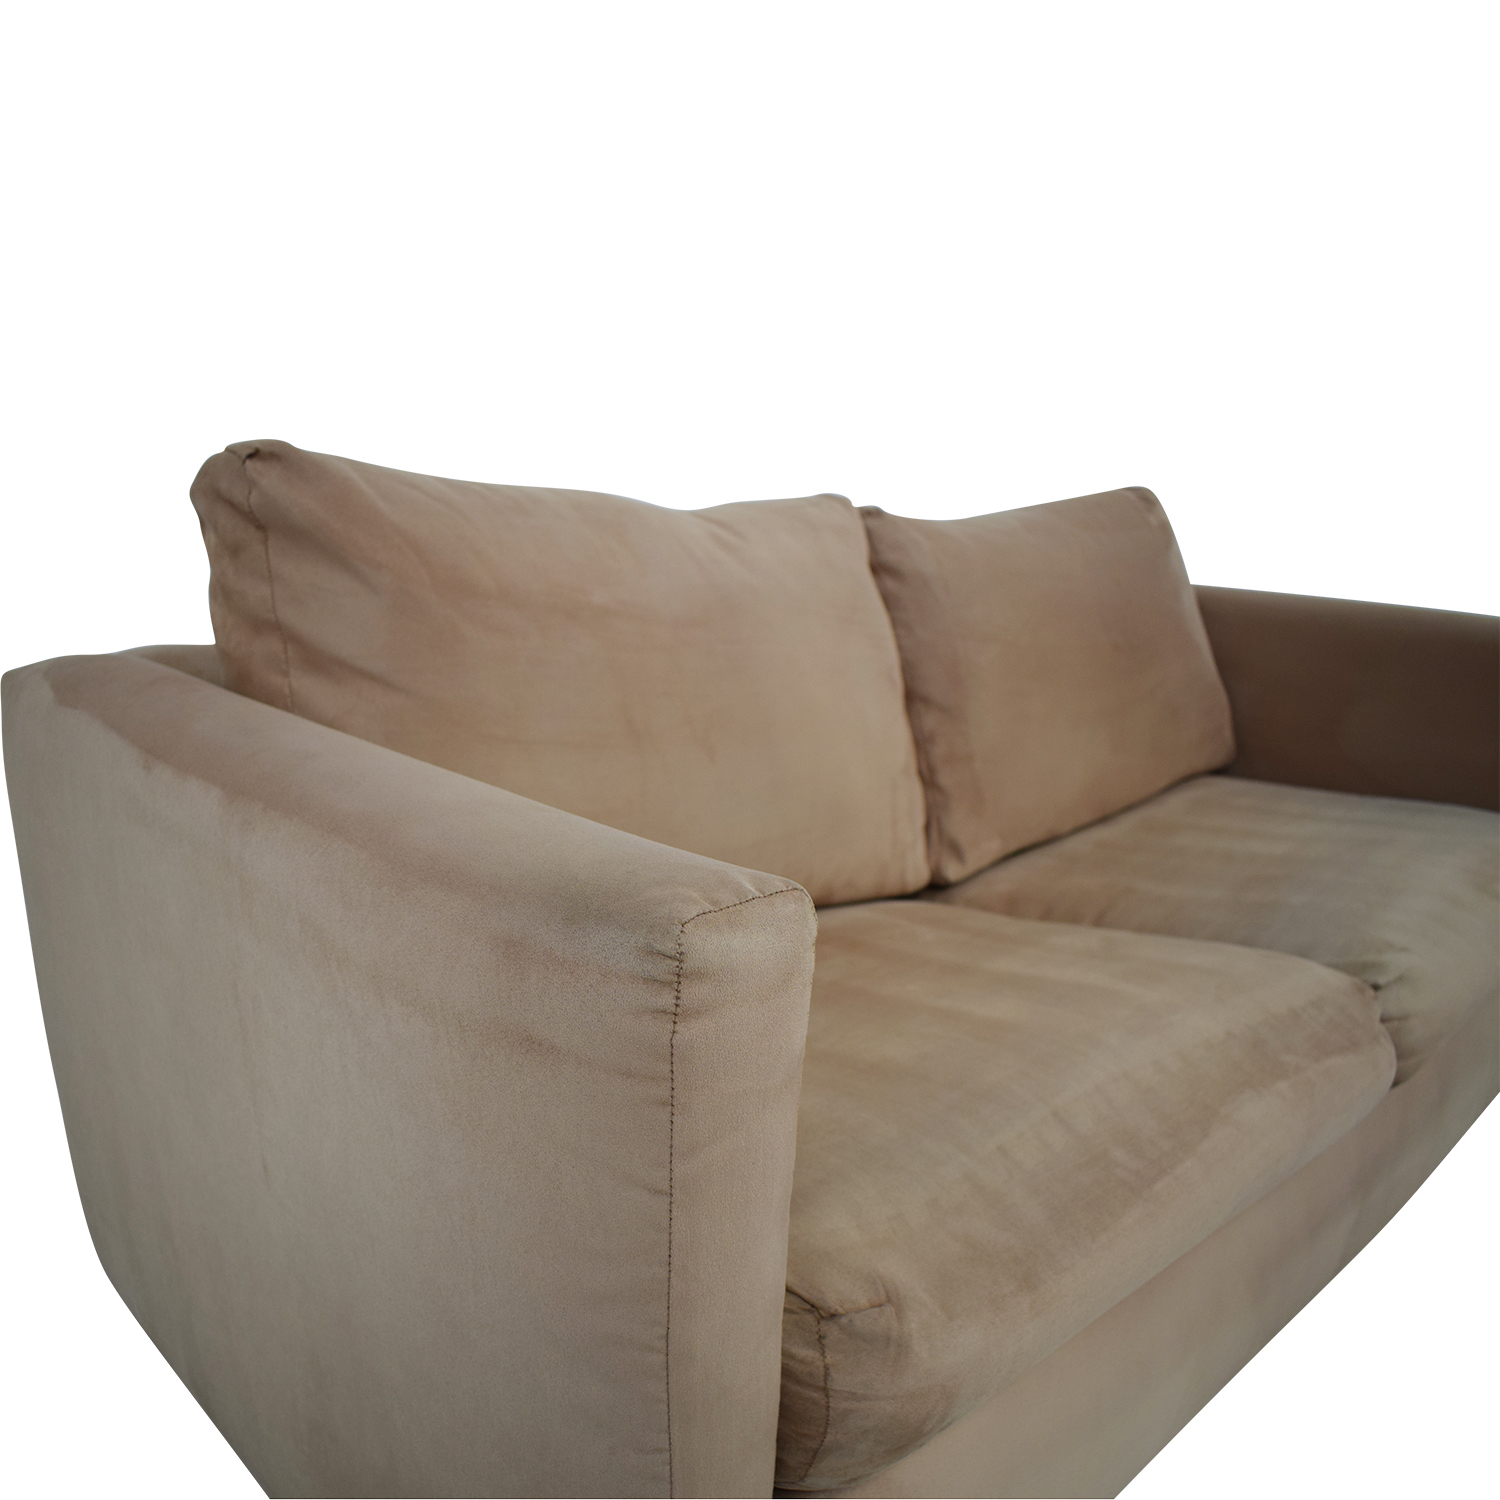 shop Rowe Furniture Two Cushion Sleeper Sofa Rowe Furniture Sofa Beds